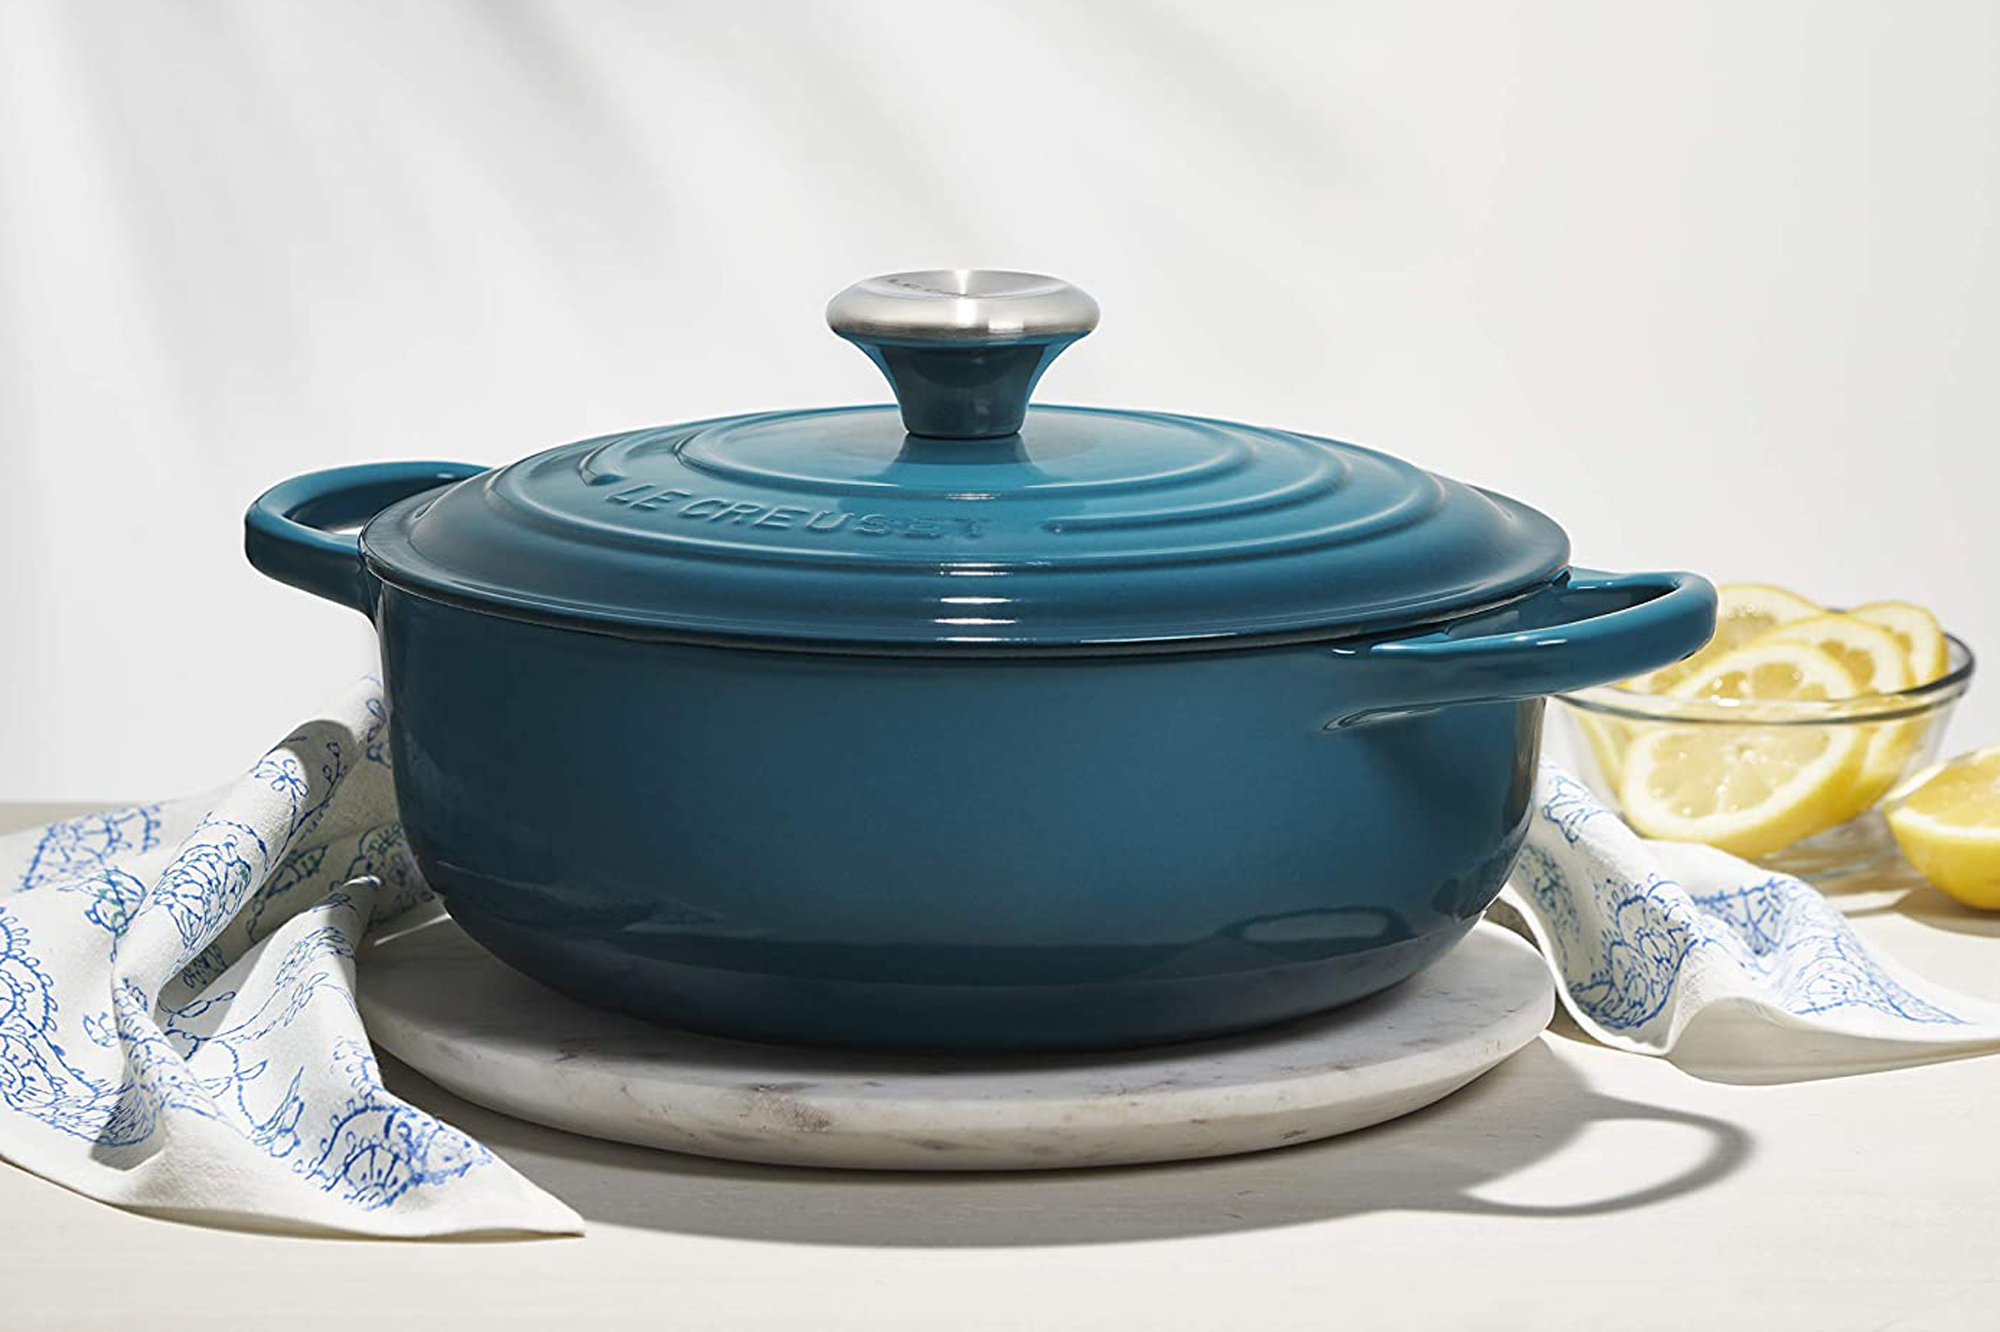 le creuset sauteuse oven on table